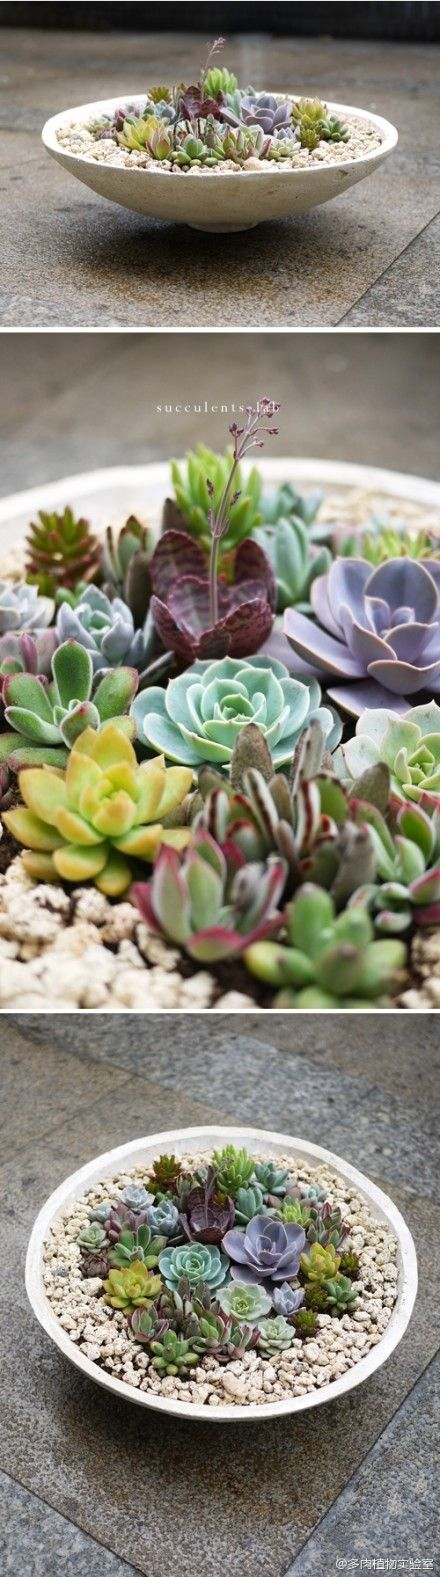 succulent garden by Judy Gallimore